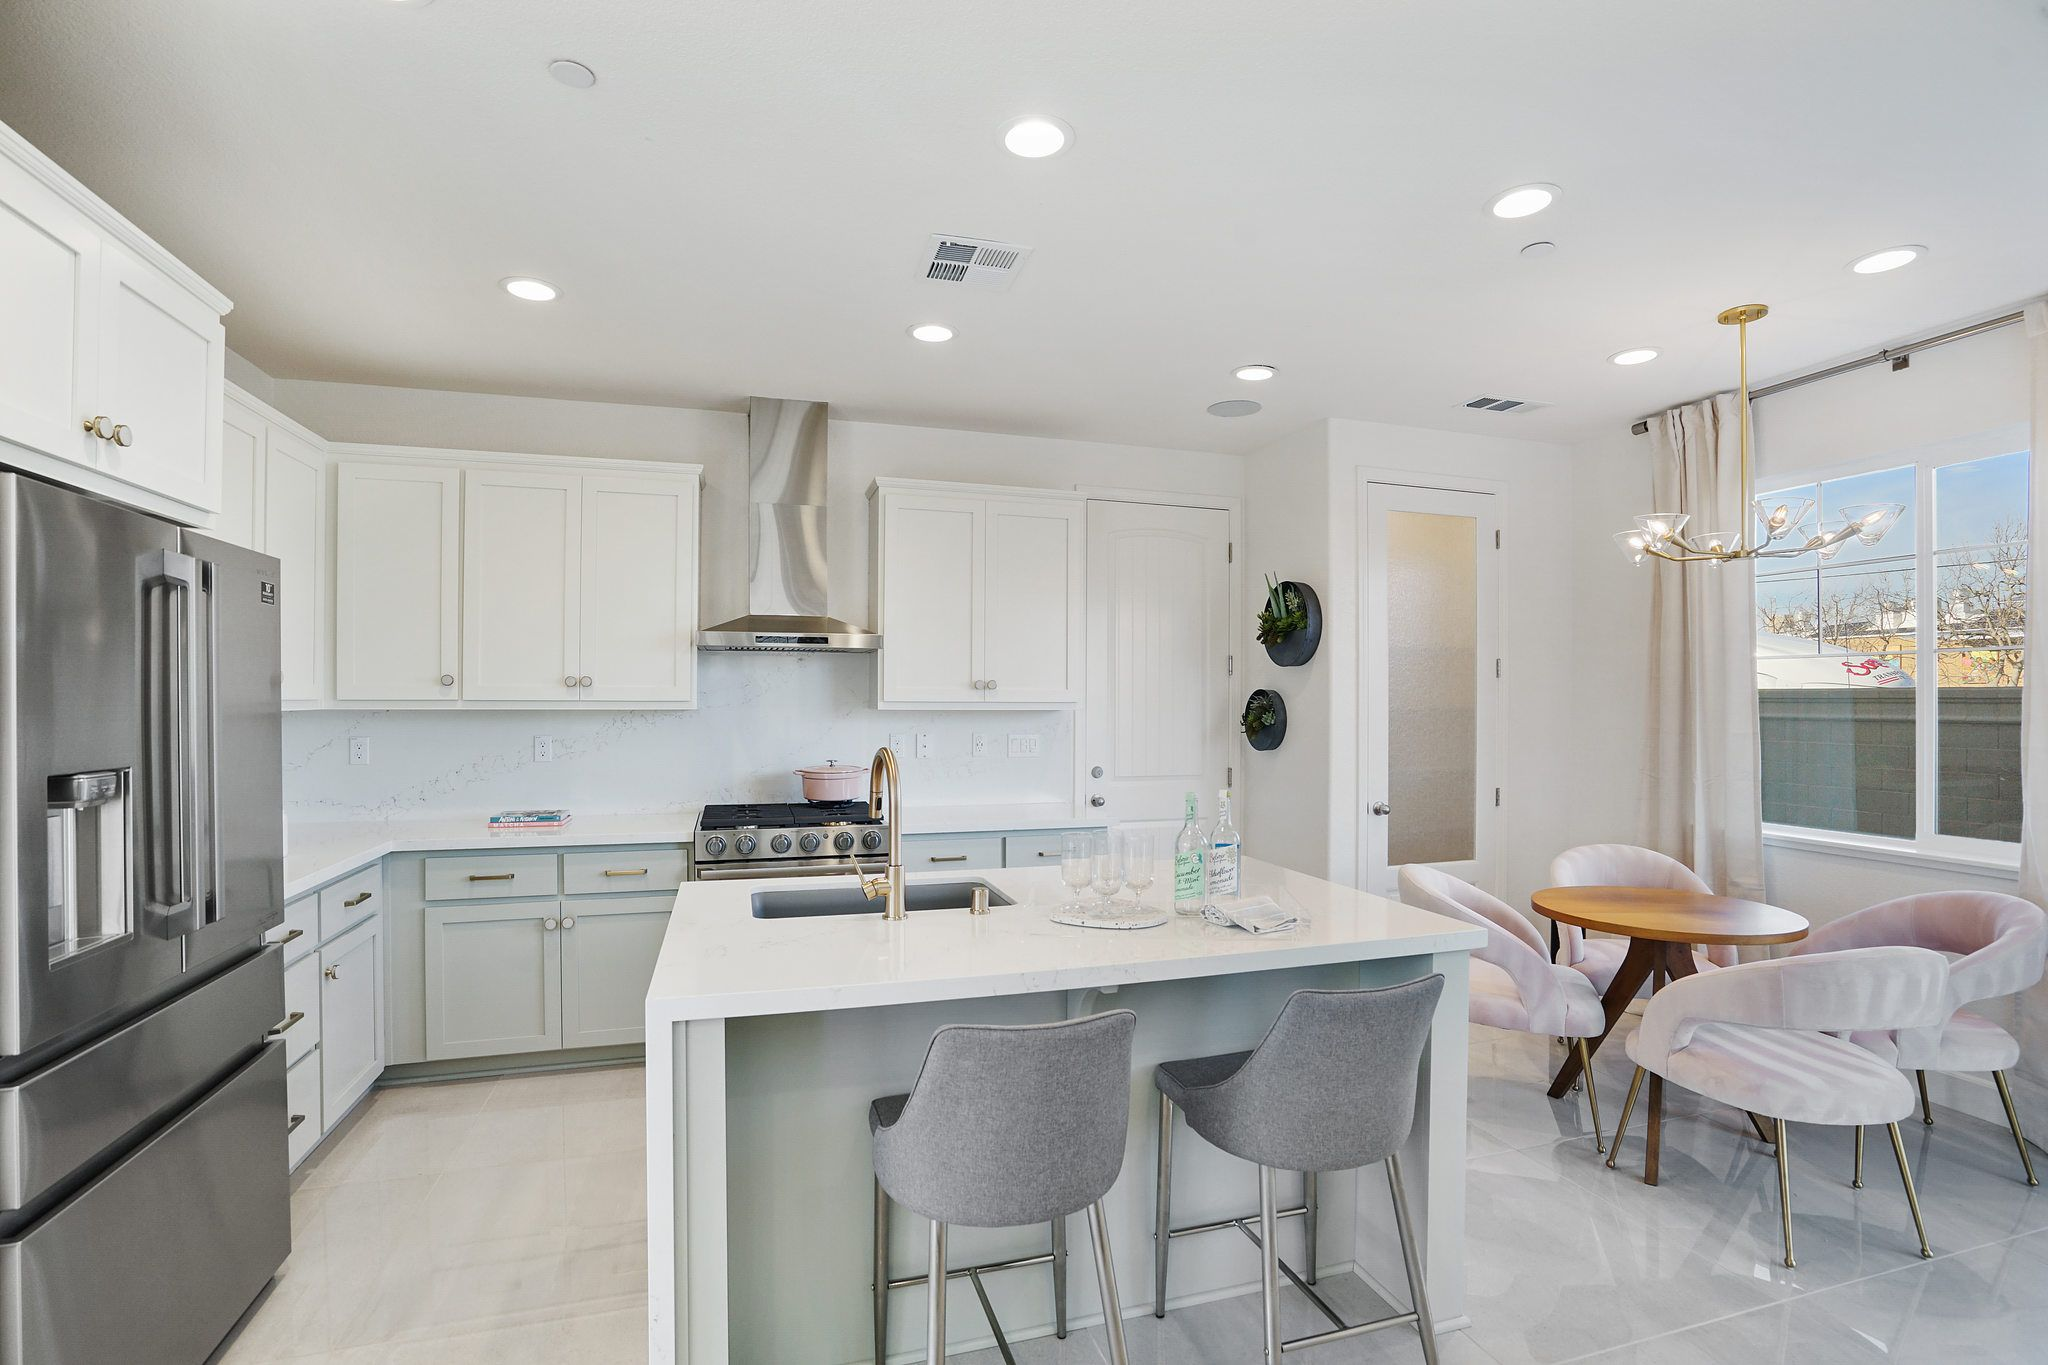 Kitchen featured in the Buckley By Discovery Homes in Oakland-Alameda, CA